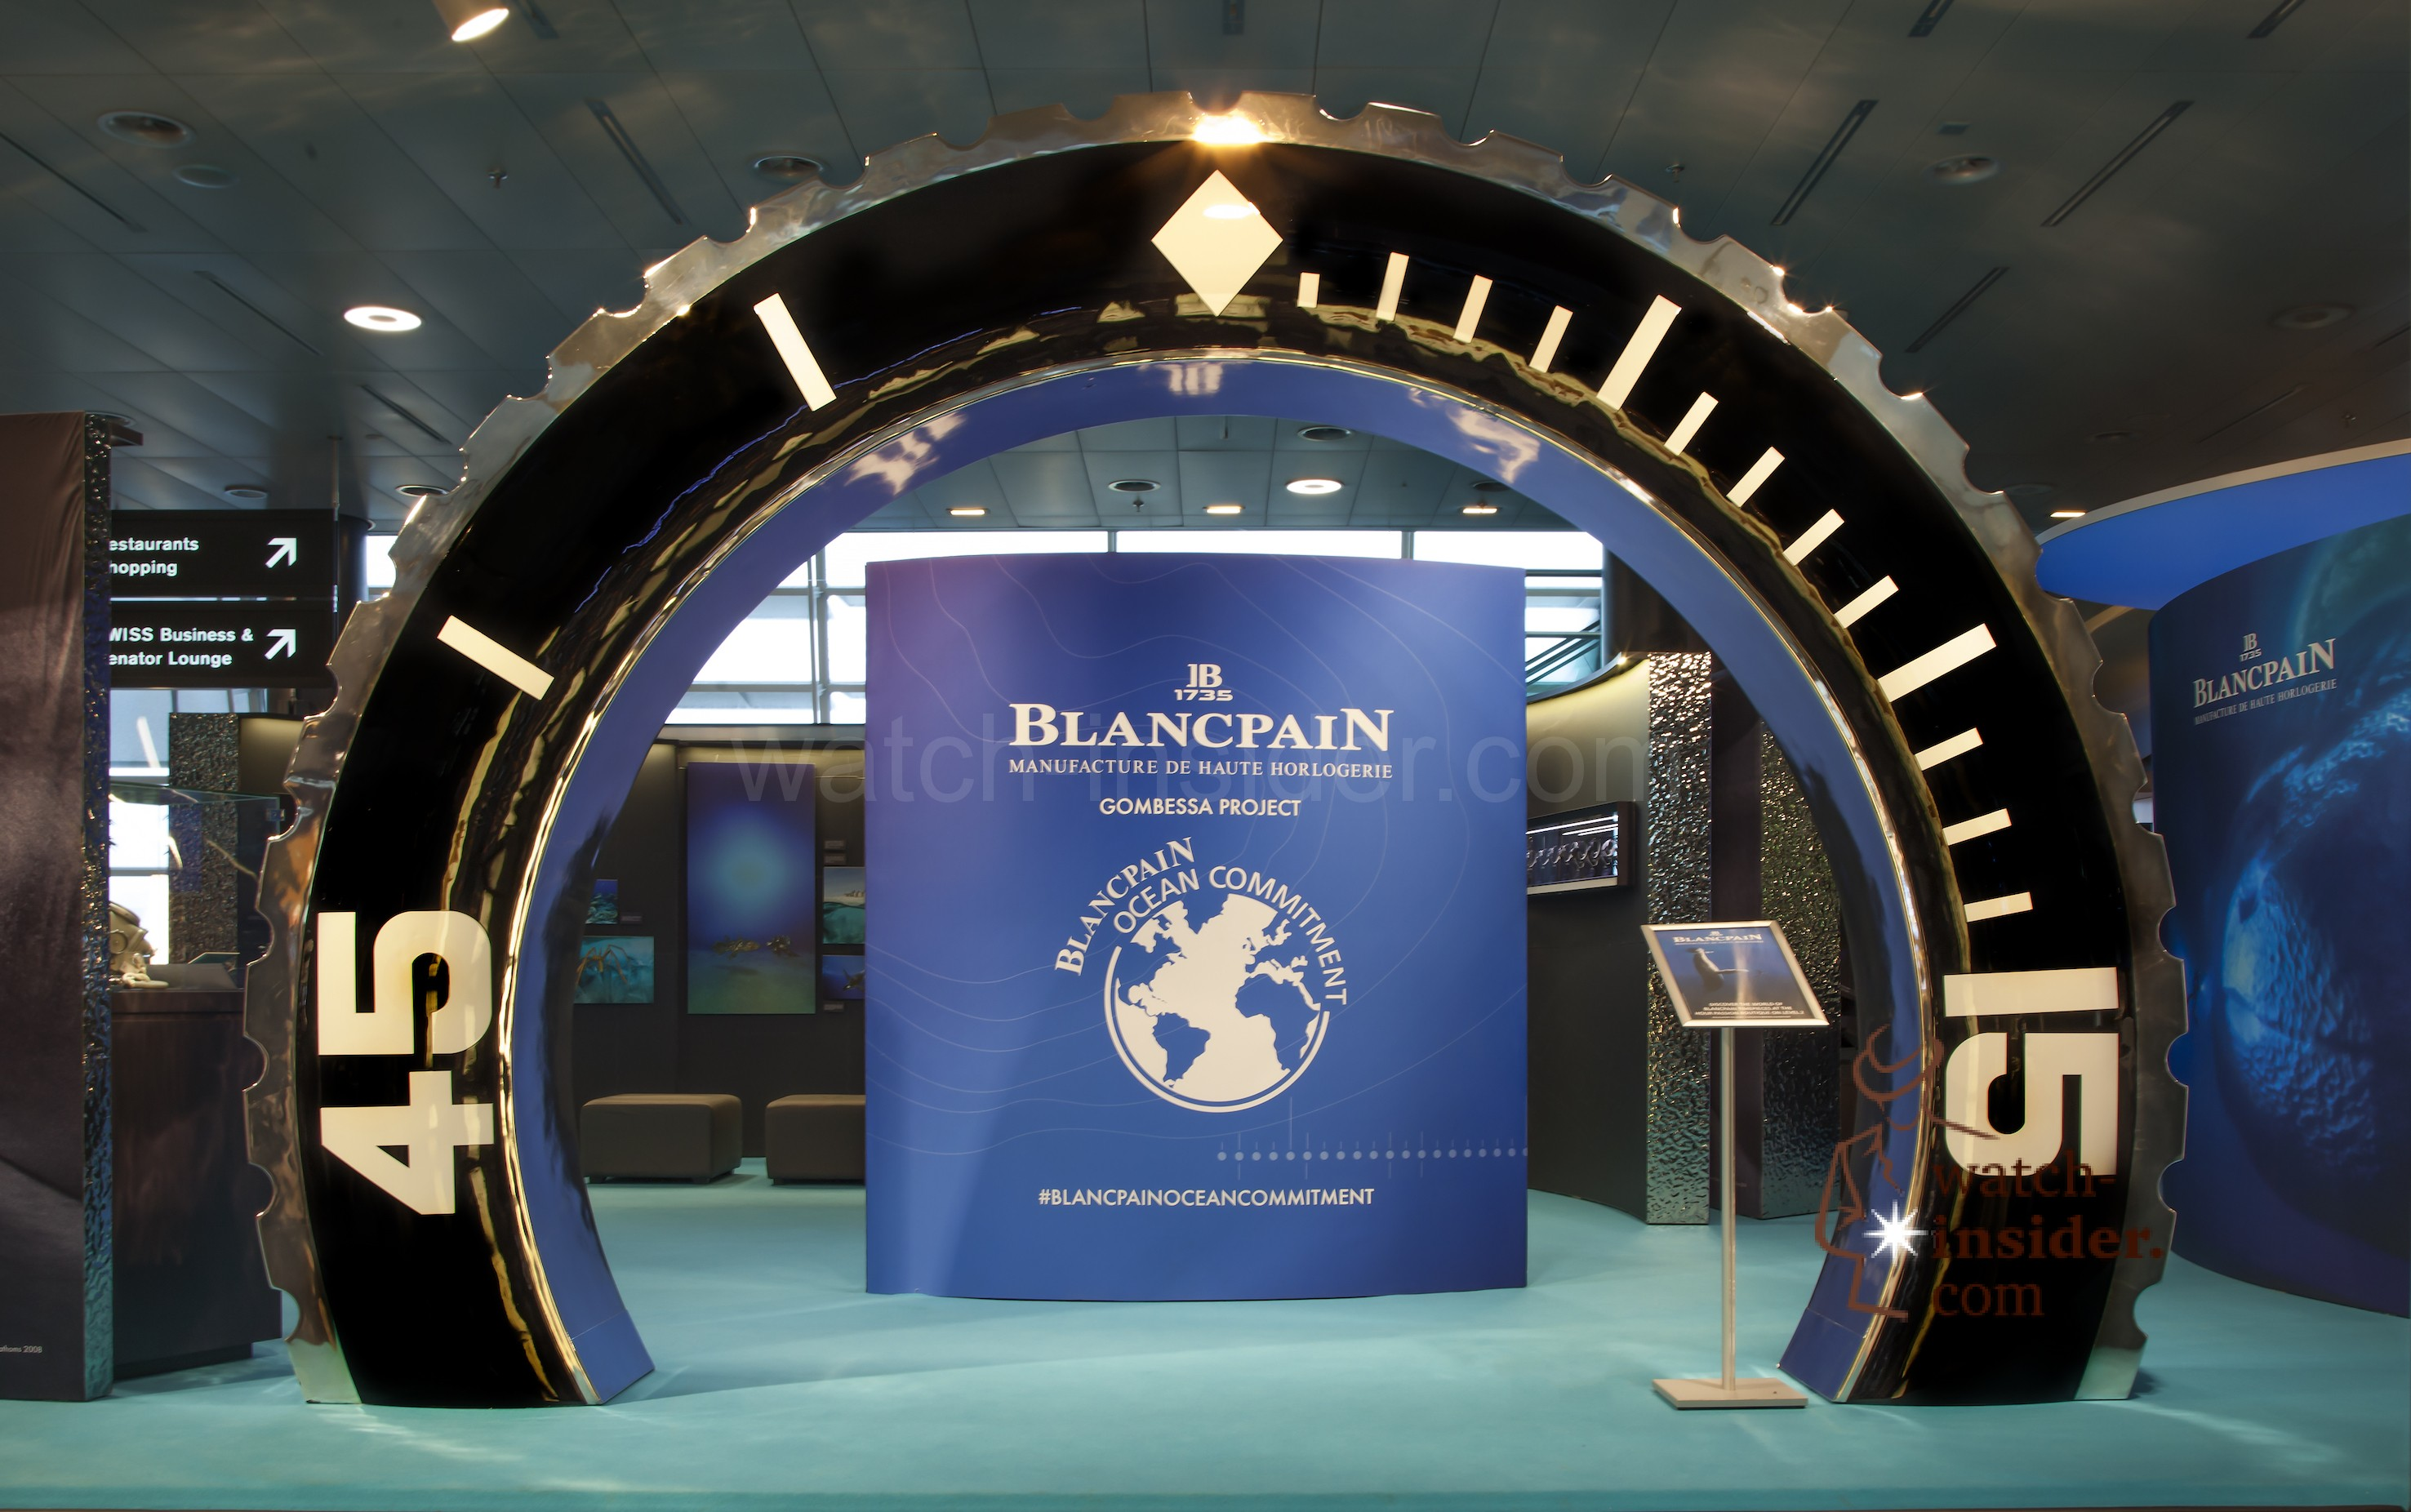 Blancpain Ocean Commitment Exhibition at Zurich (ZRH) Airport